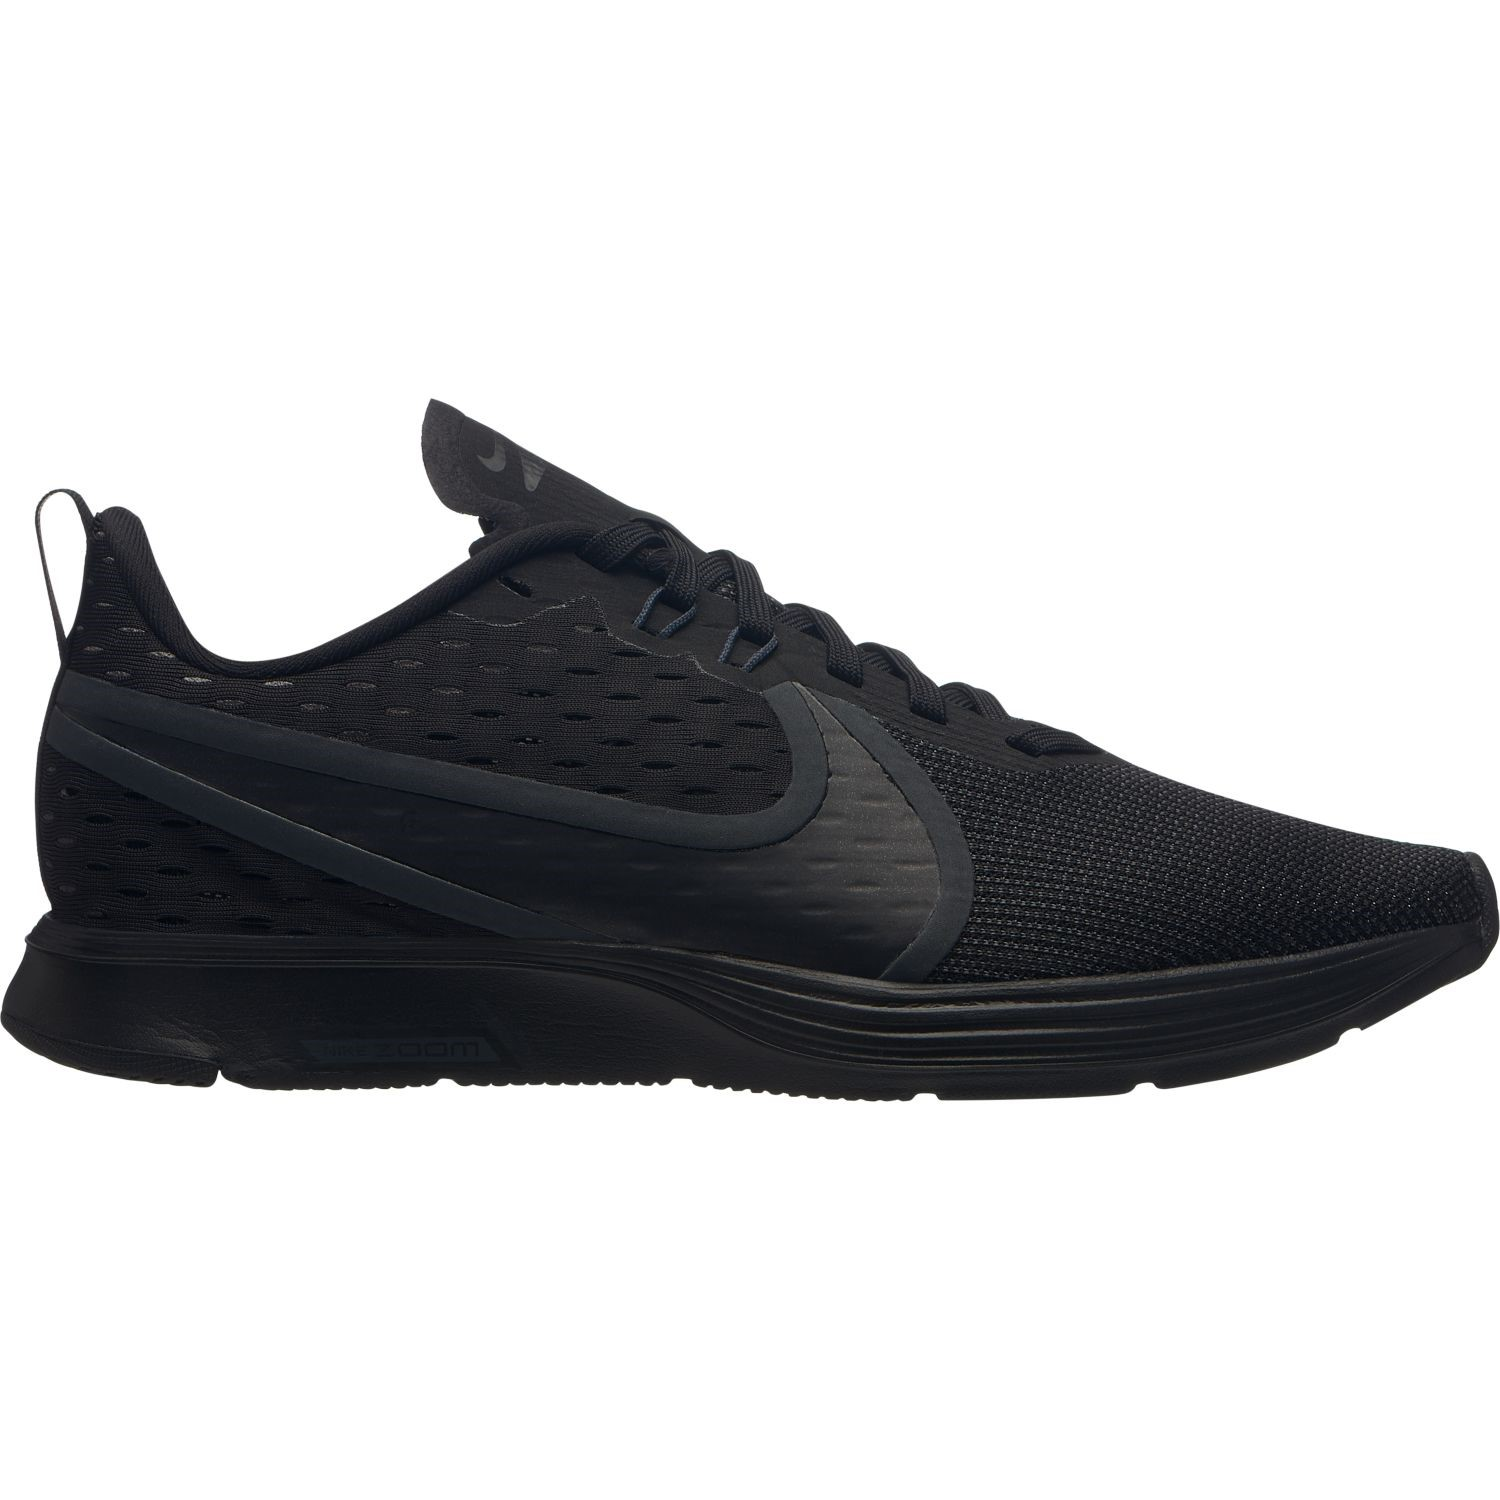 8c9a8320a2d6 Nike Zoom Strike 2 - Womens Running Shoes - Anthracite Black ...